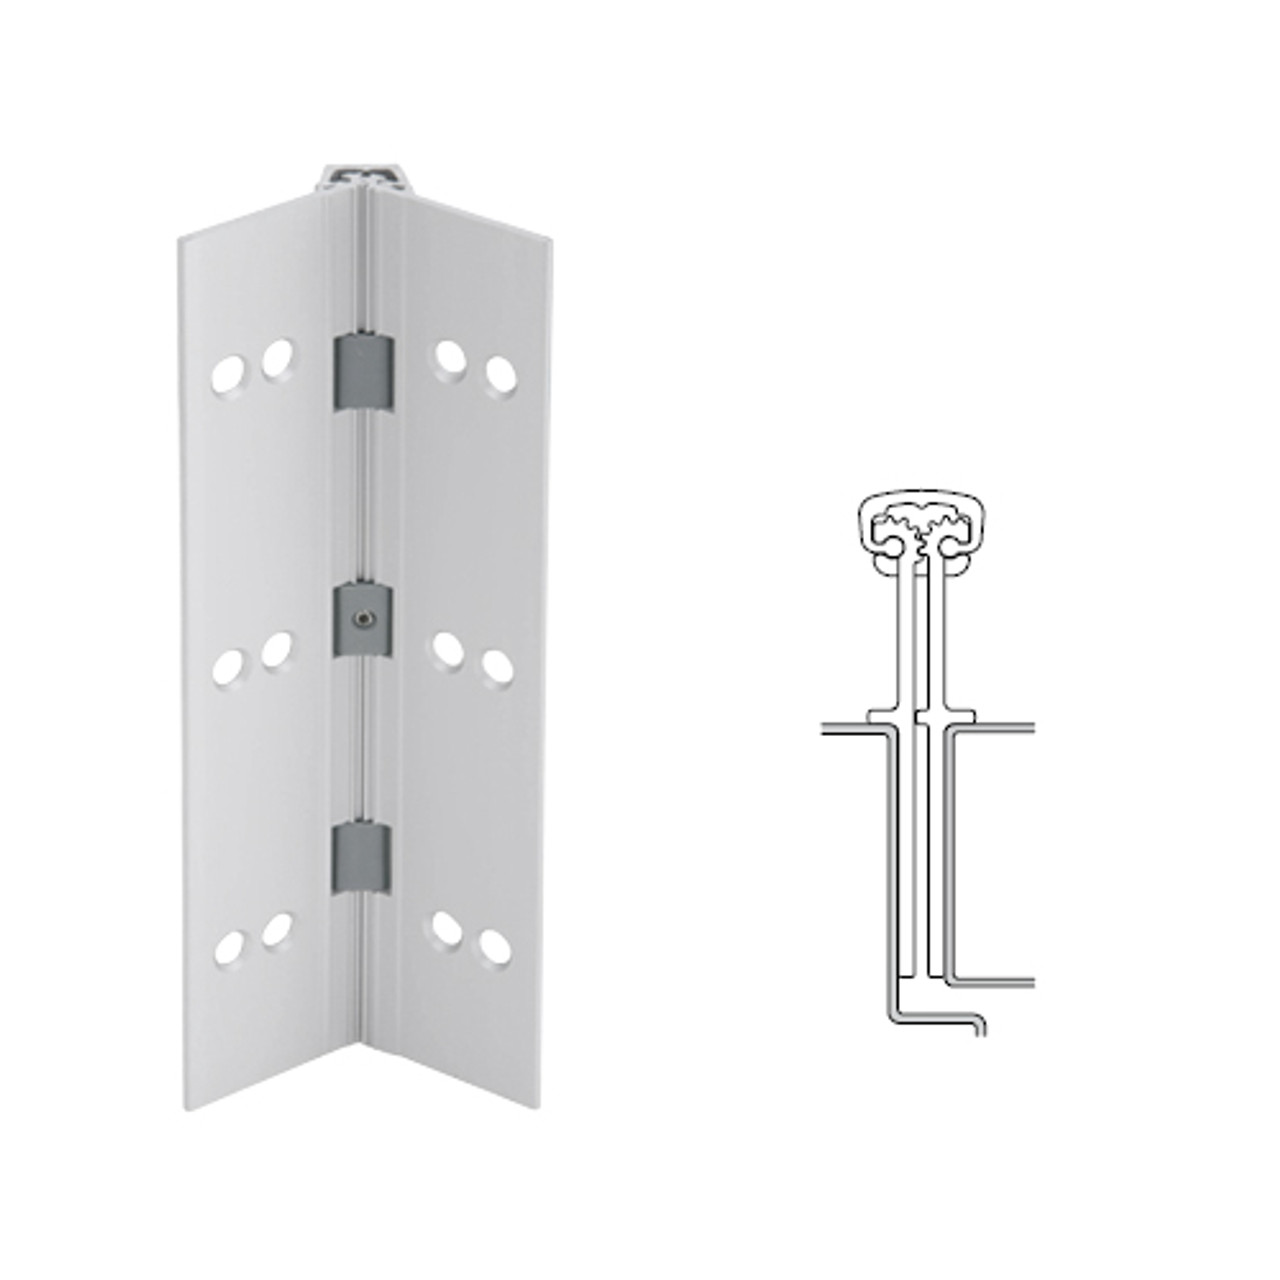 040XY-US28-83 IVES Full Mortise Continuous Geared Hinges in Satin Aluminum